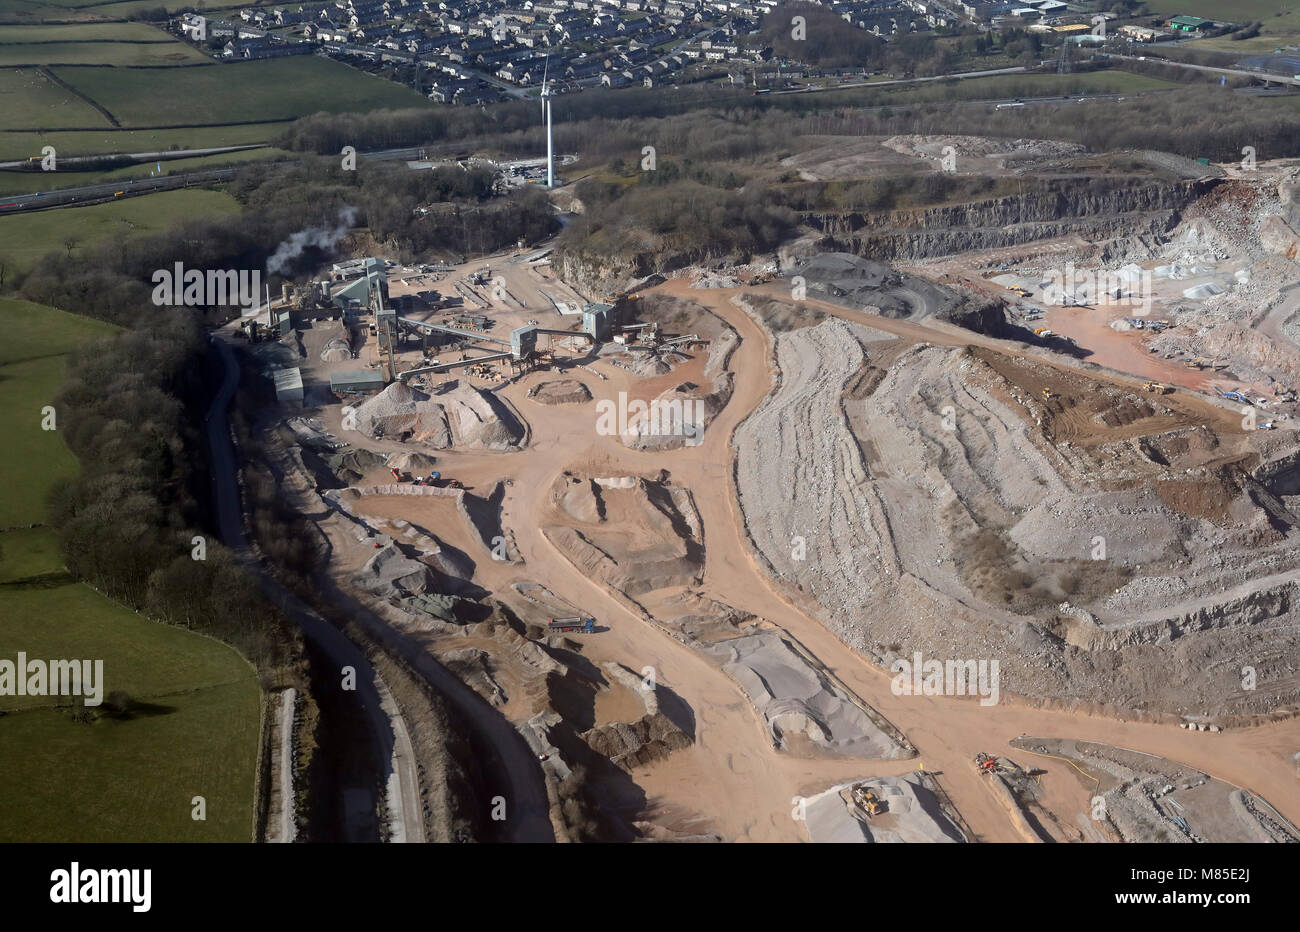 aerial view of a sand extraction quarry run by Aggregate Industries at Carnforth, Lancashire, UK - Stock Image